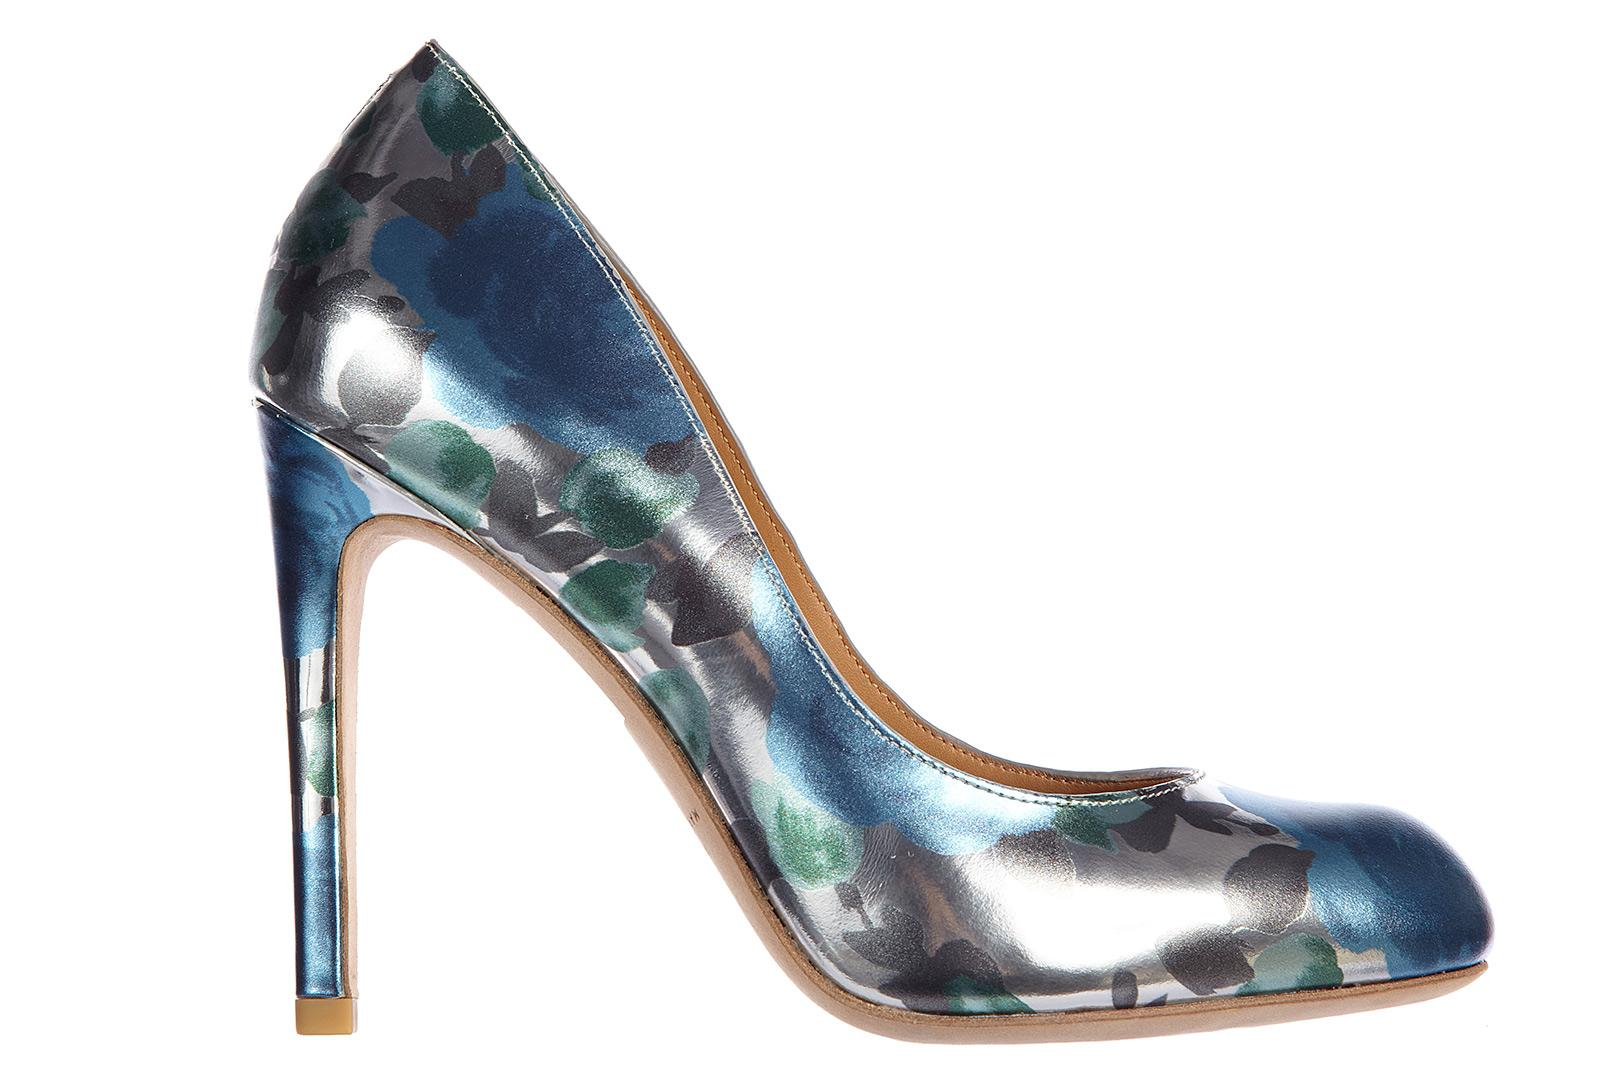 Marc By Marc Jacobs Women's Leather Pumps Court Shoes High Heel Sky Multi Flower In Silver